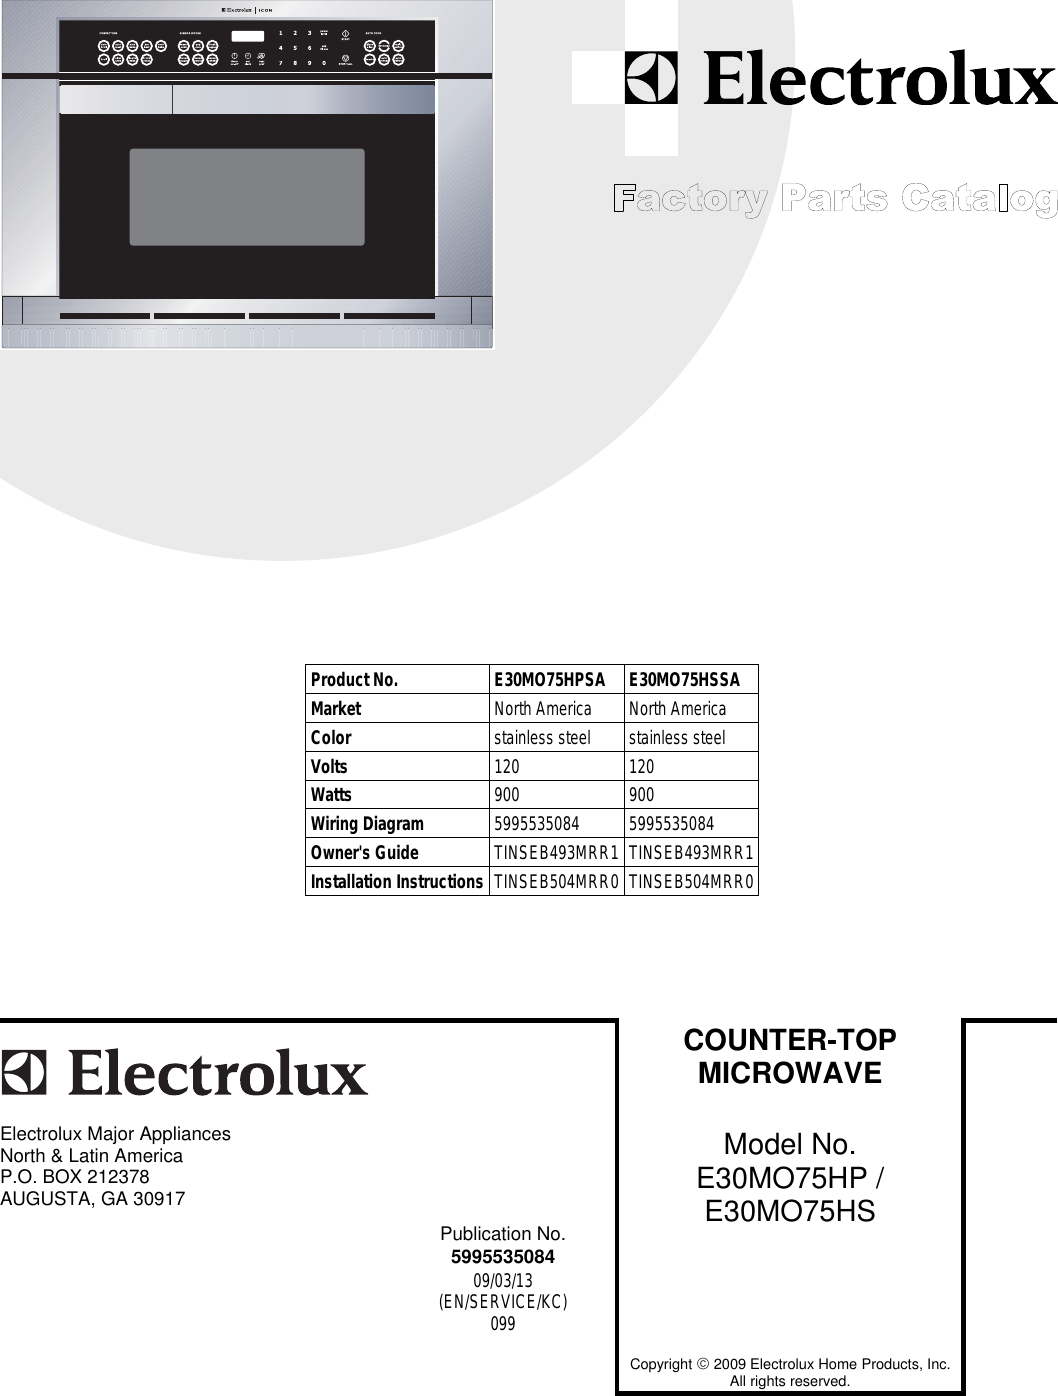 Electrolux E30mo75hp Users Manual To Begin A Parts Catalog Click Wiring Schematic Load Contents In The Top Menu Bar